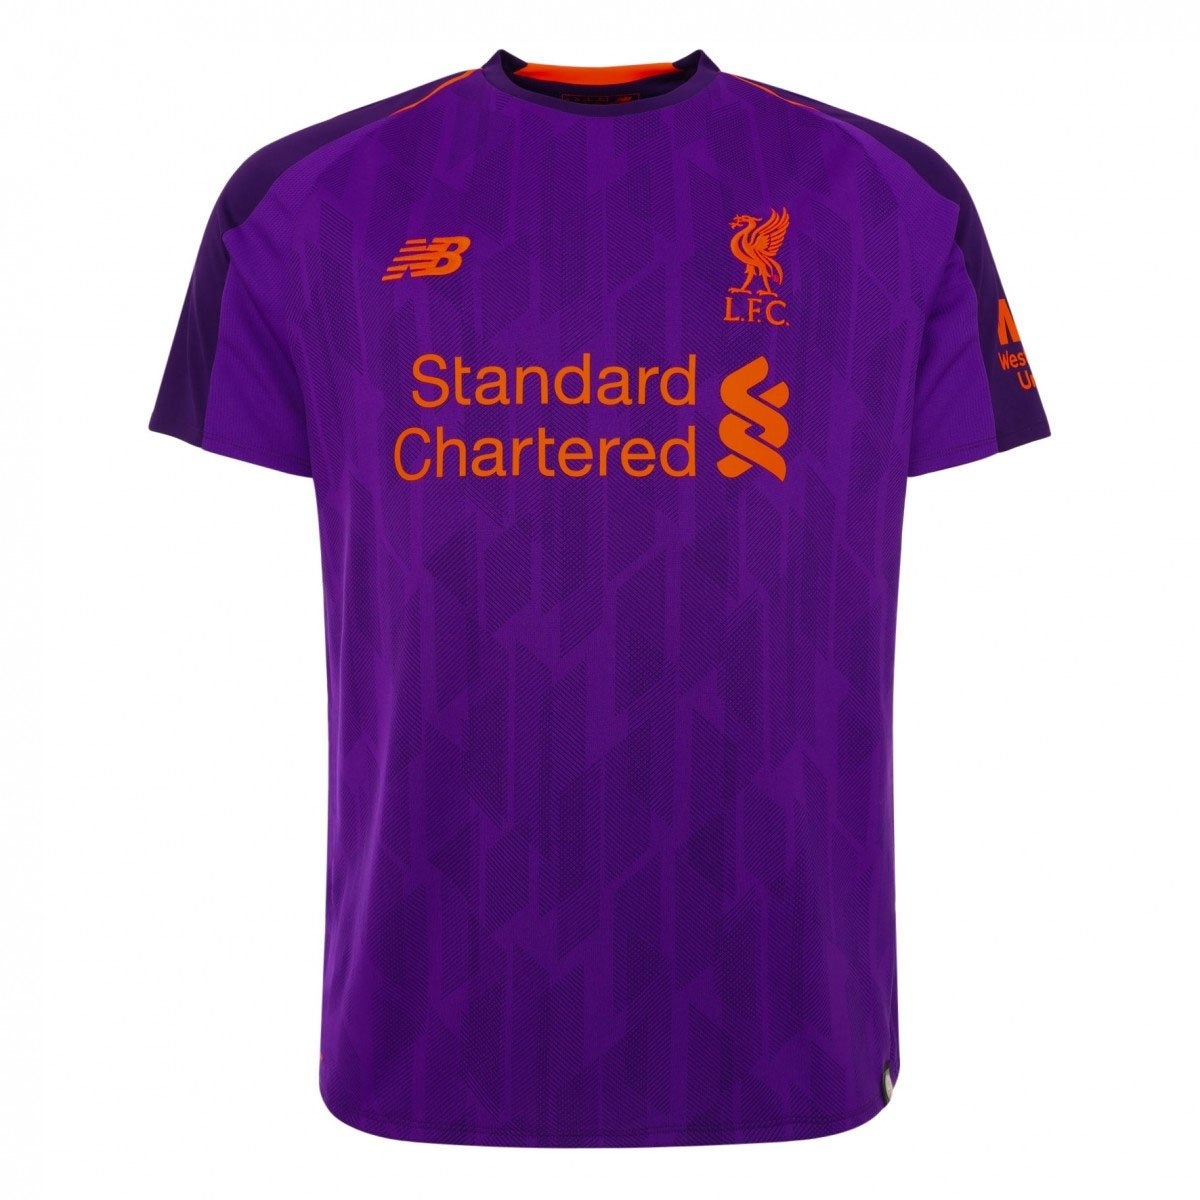 super popular d2cde b6b14 Amazon.com: Liverpool Kid's 2018/2019 Away Soccer Jersey ...